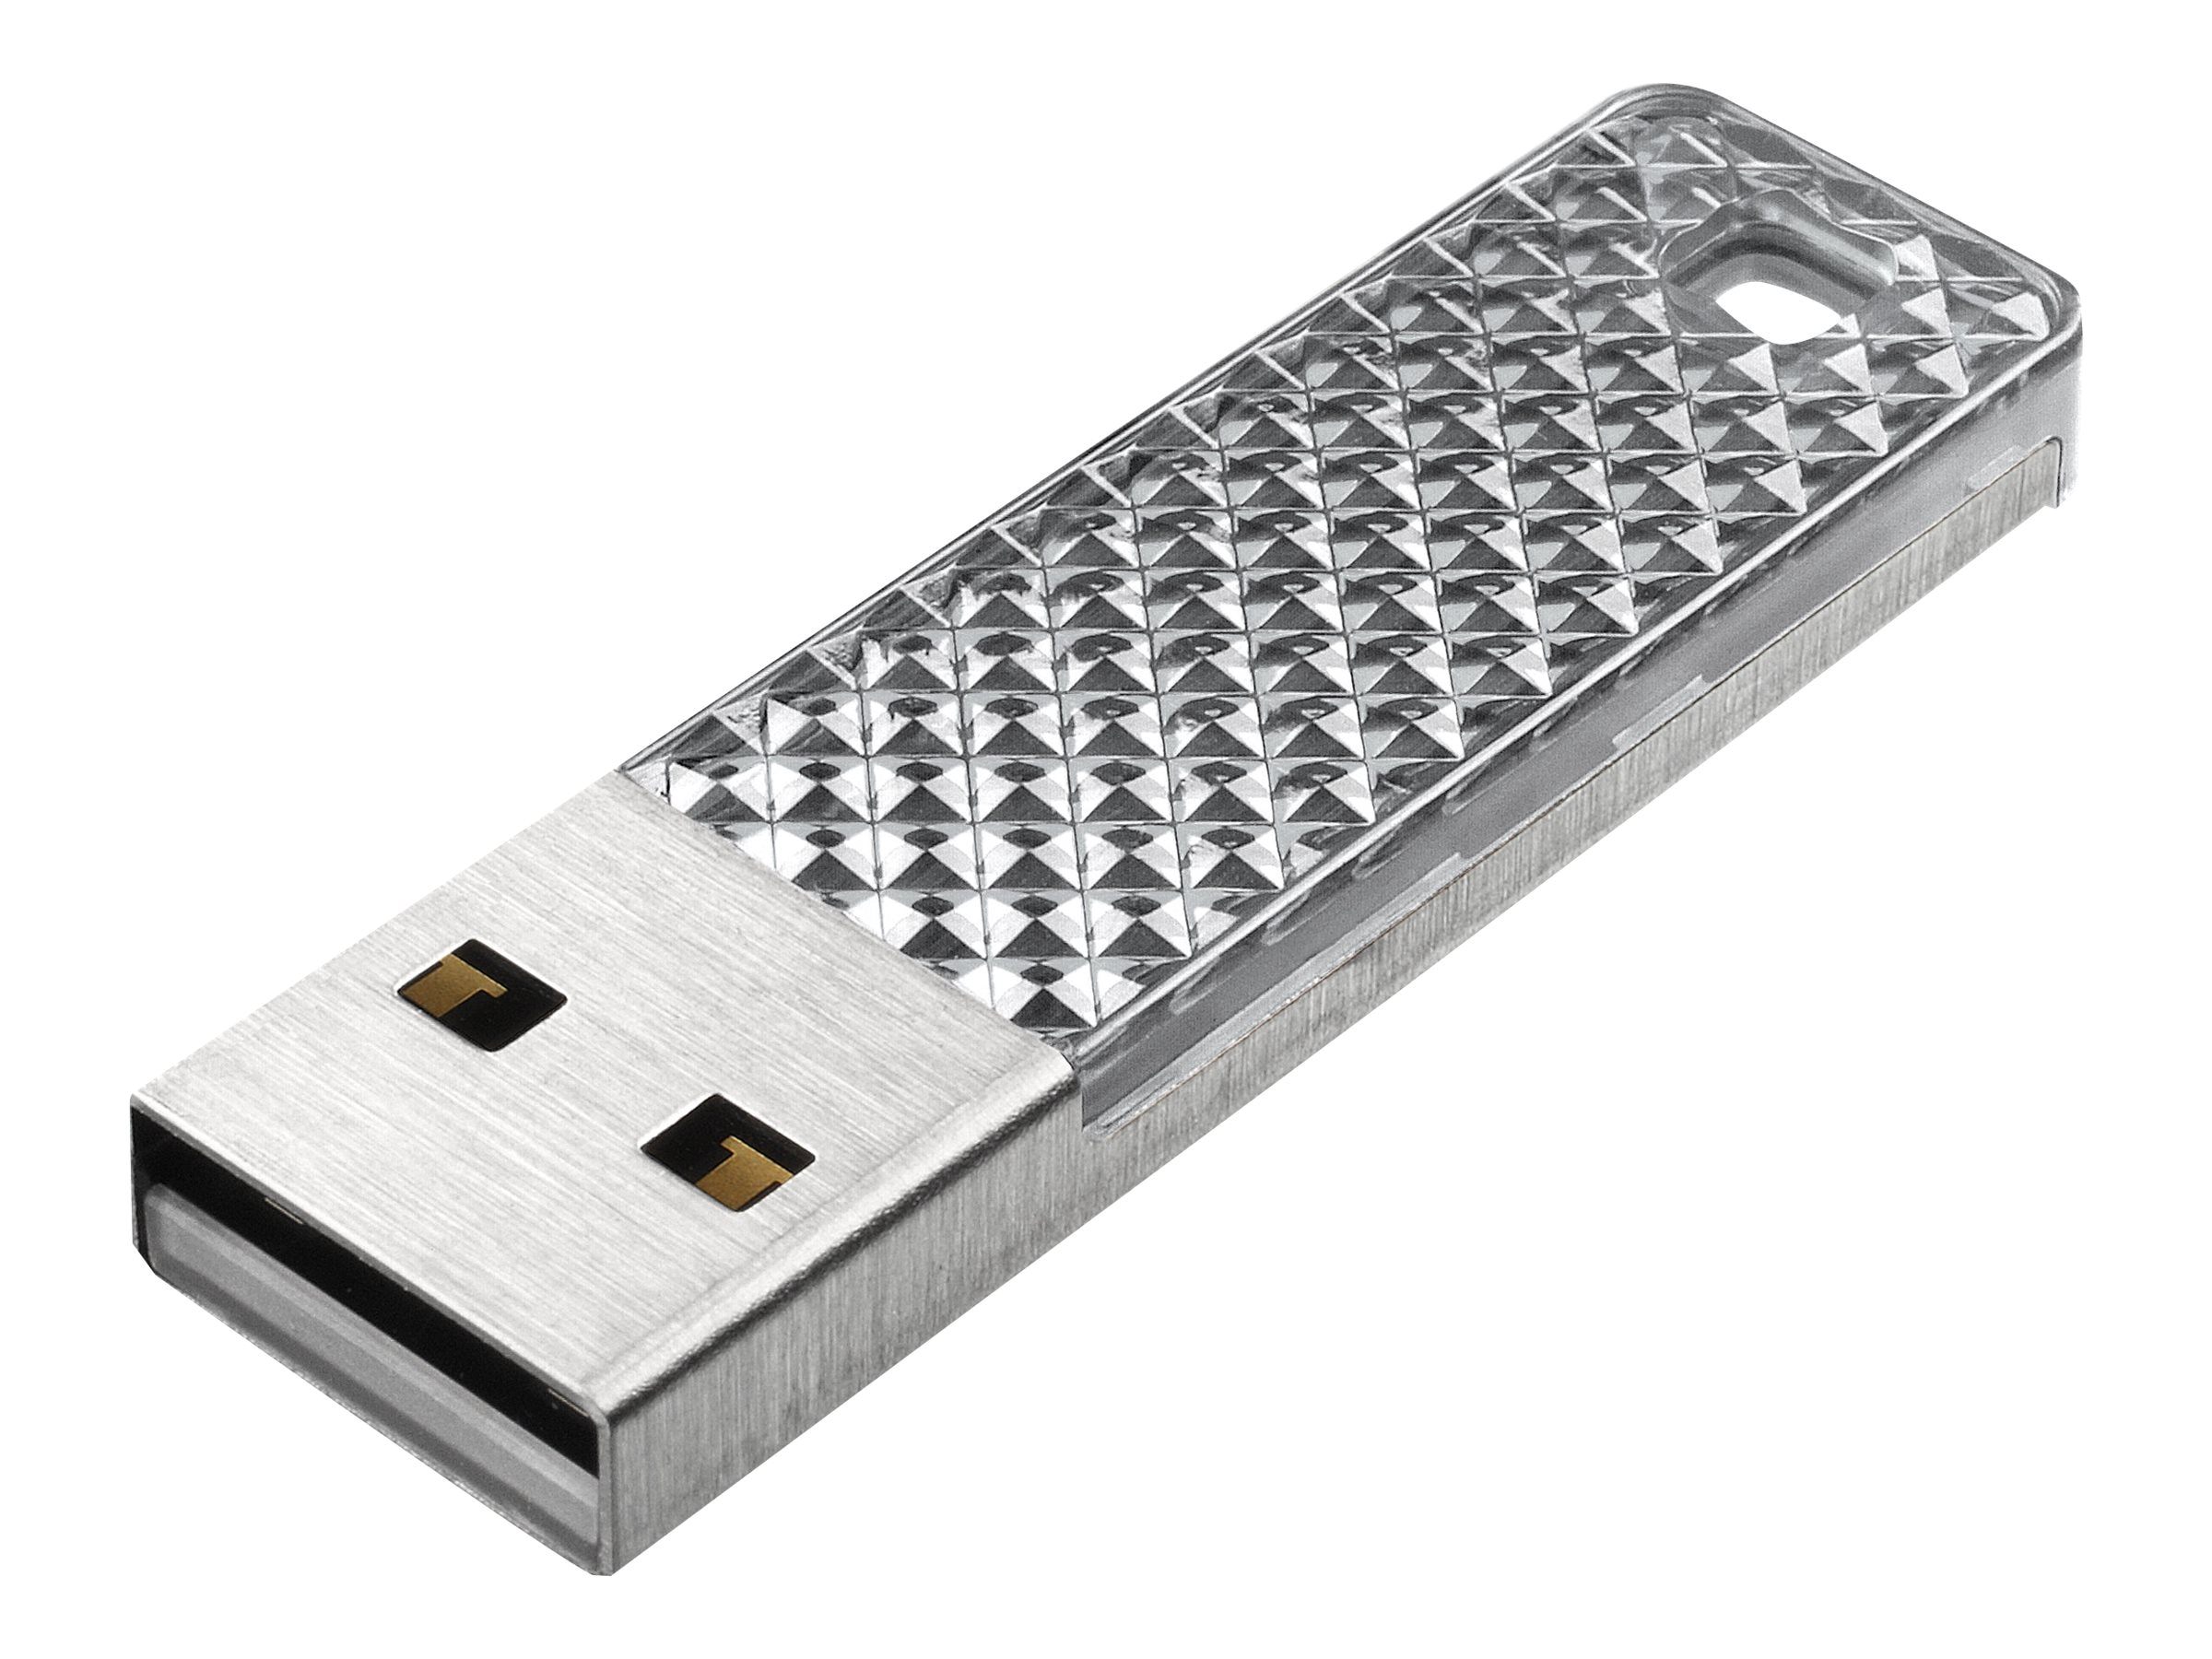 SanDisk 32GB Cruzer Facet USB Flash Drive, Silver